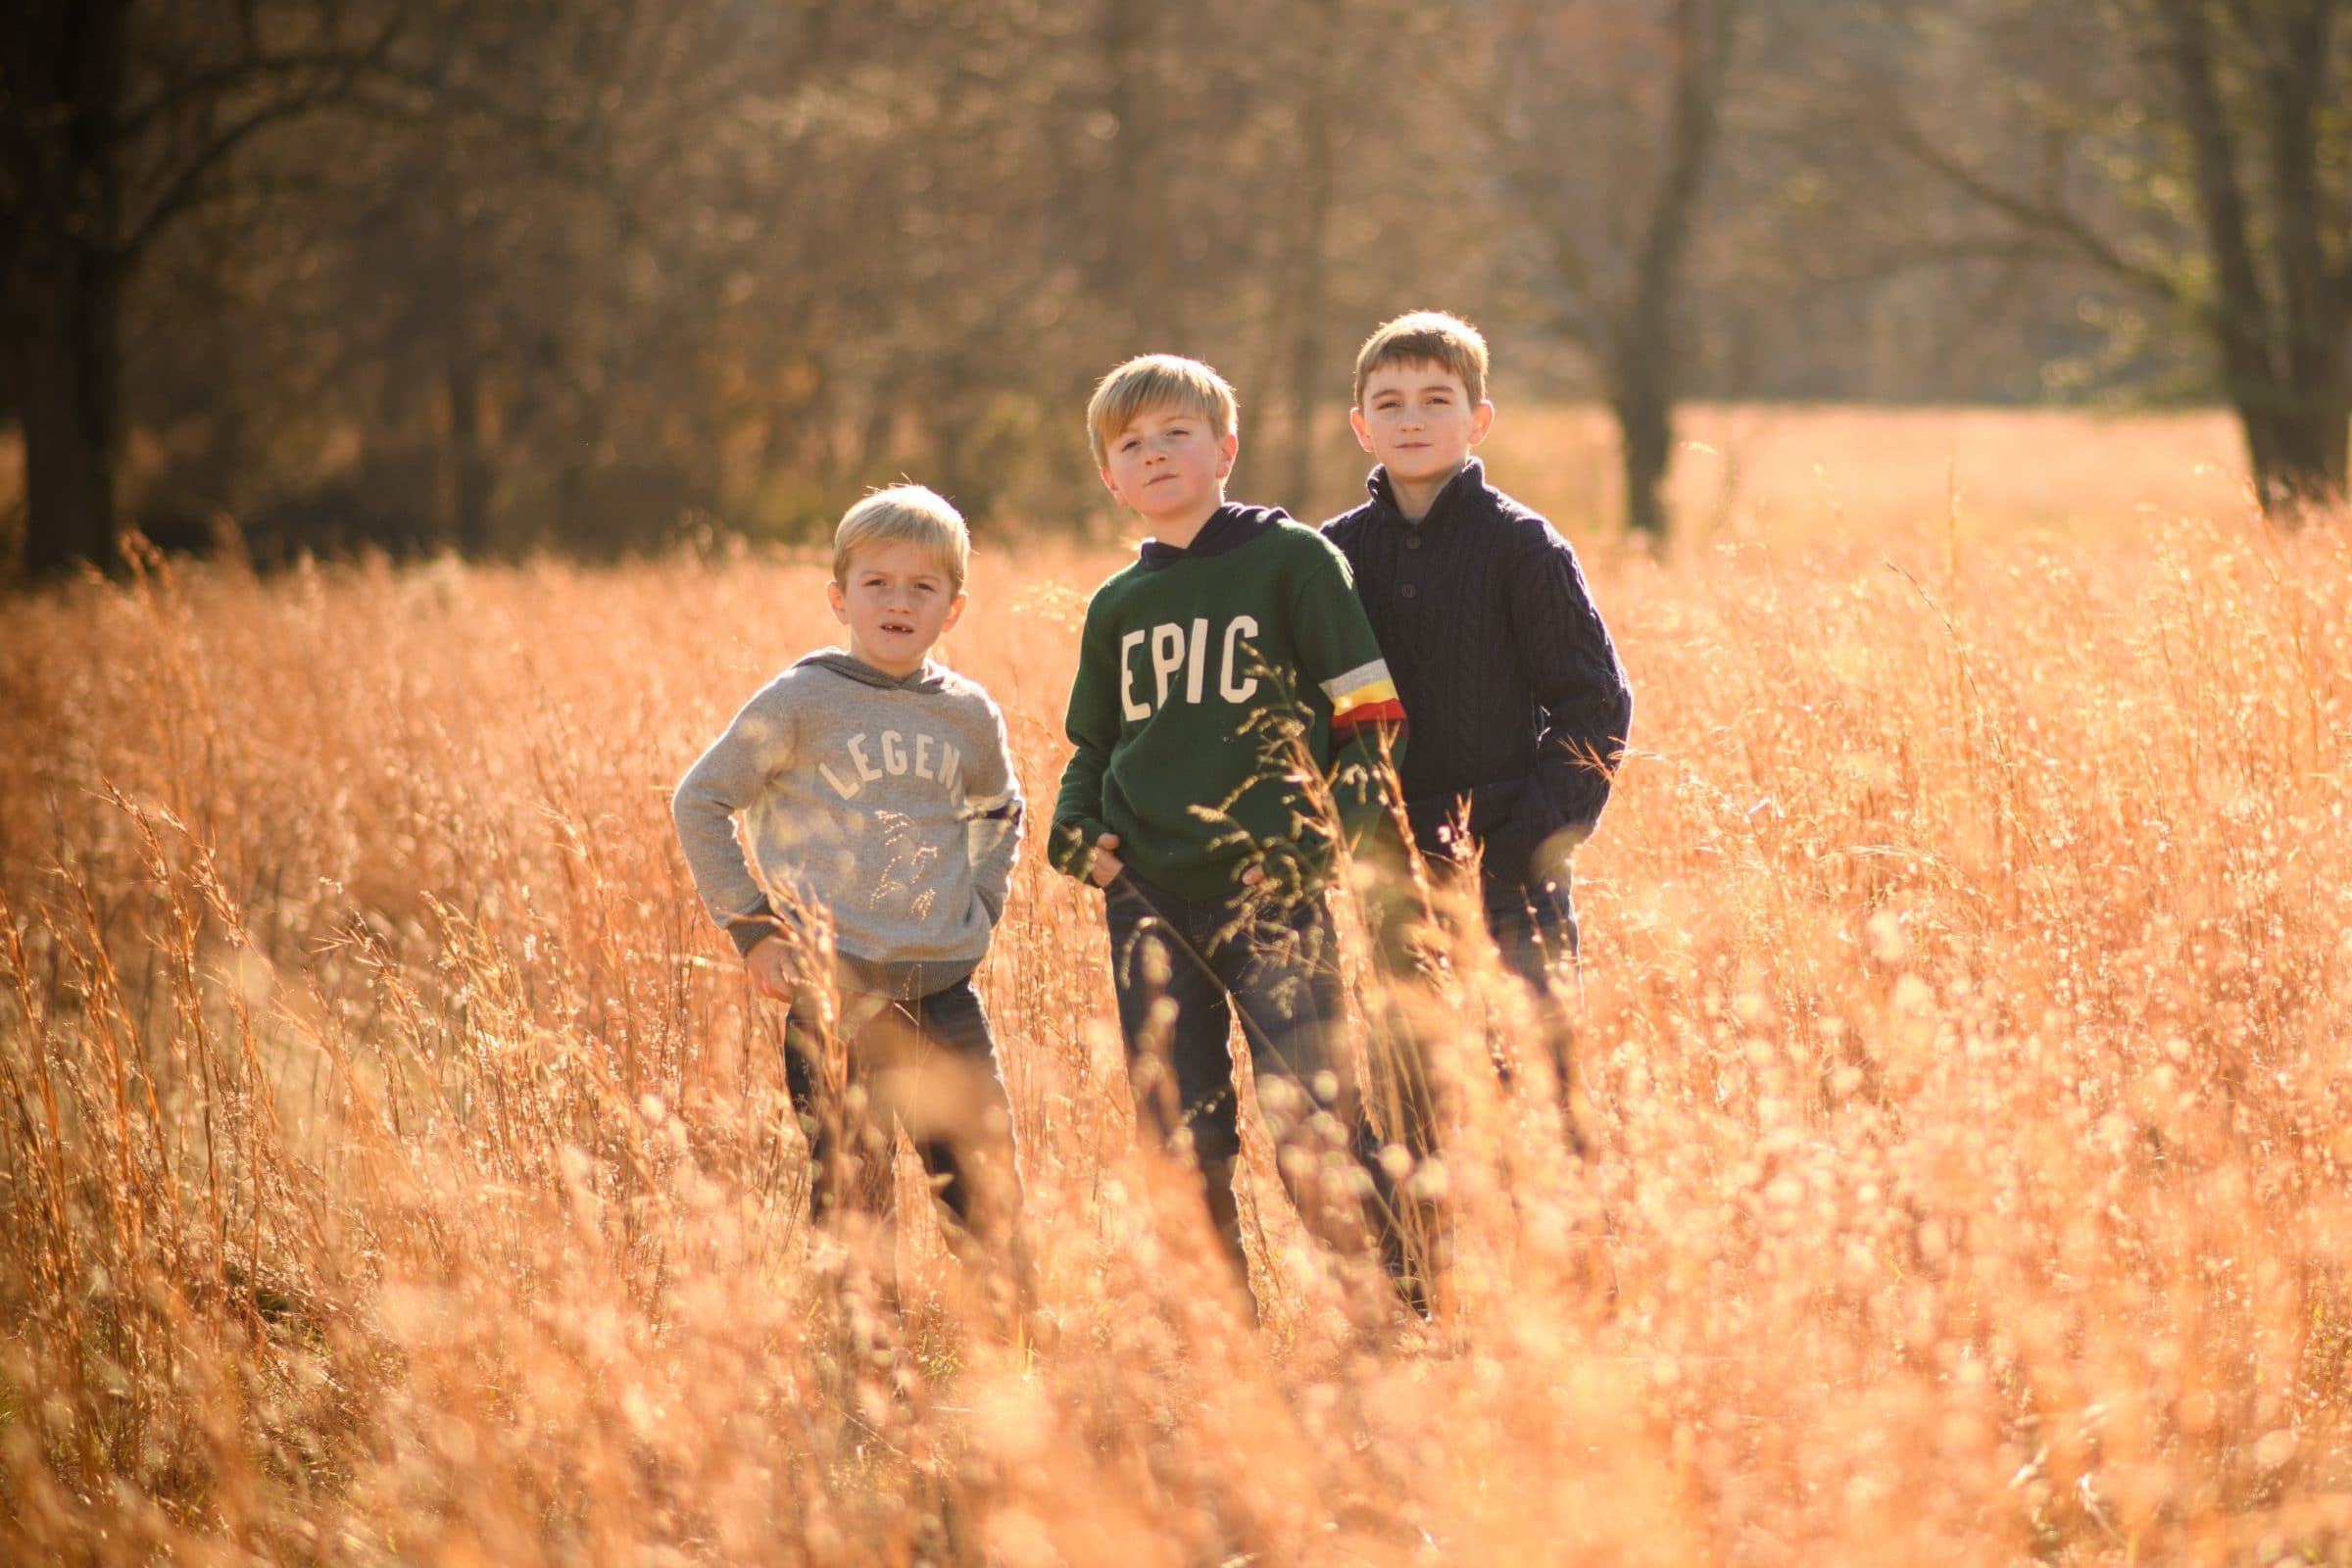 3 brothers in tall grass during magic hour